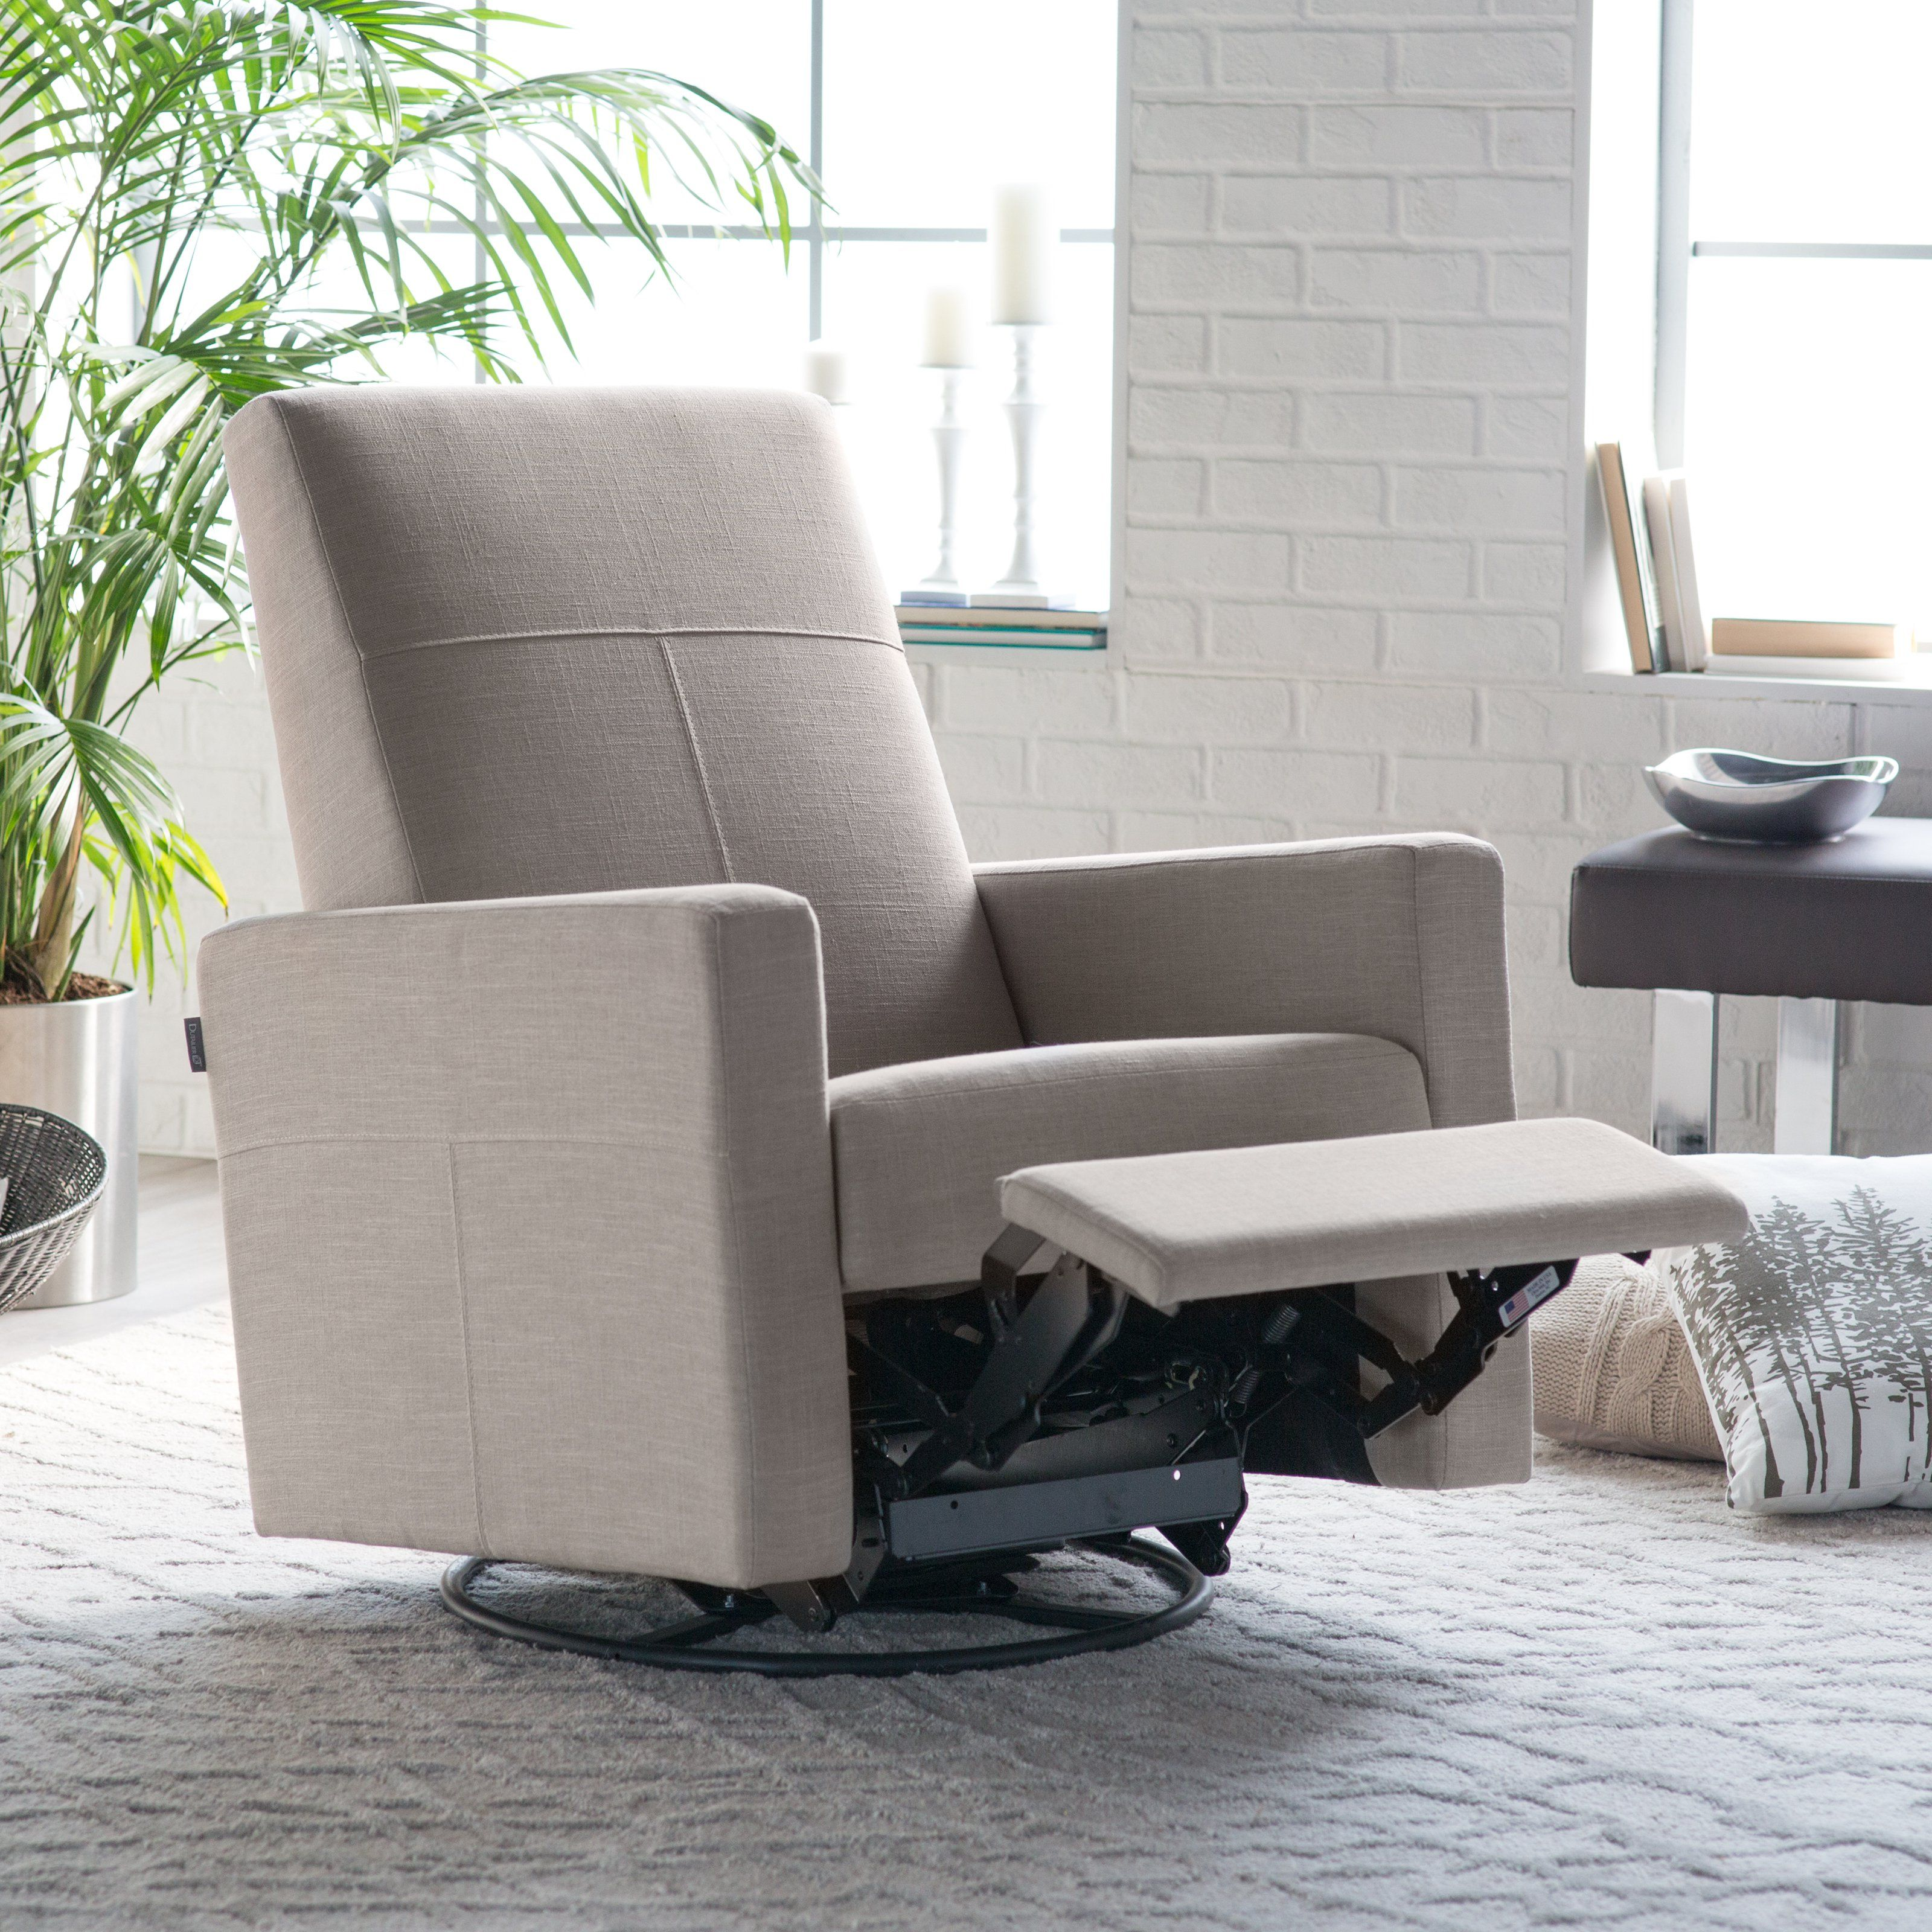 Marvelous Swivel Chairs Upholstered Pics Decoration Ideas